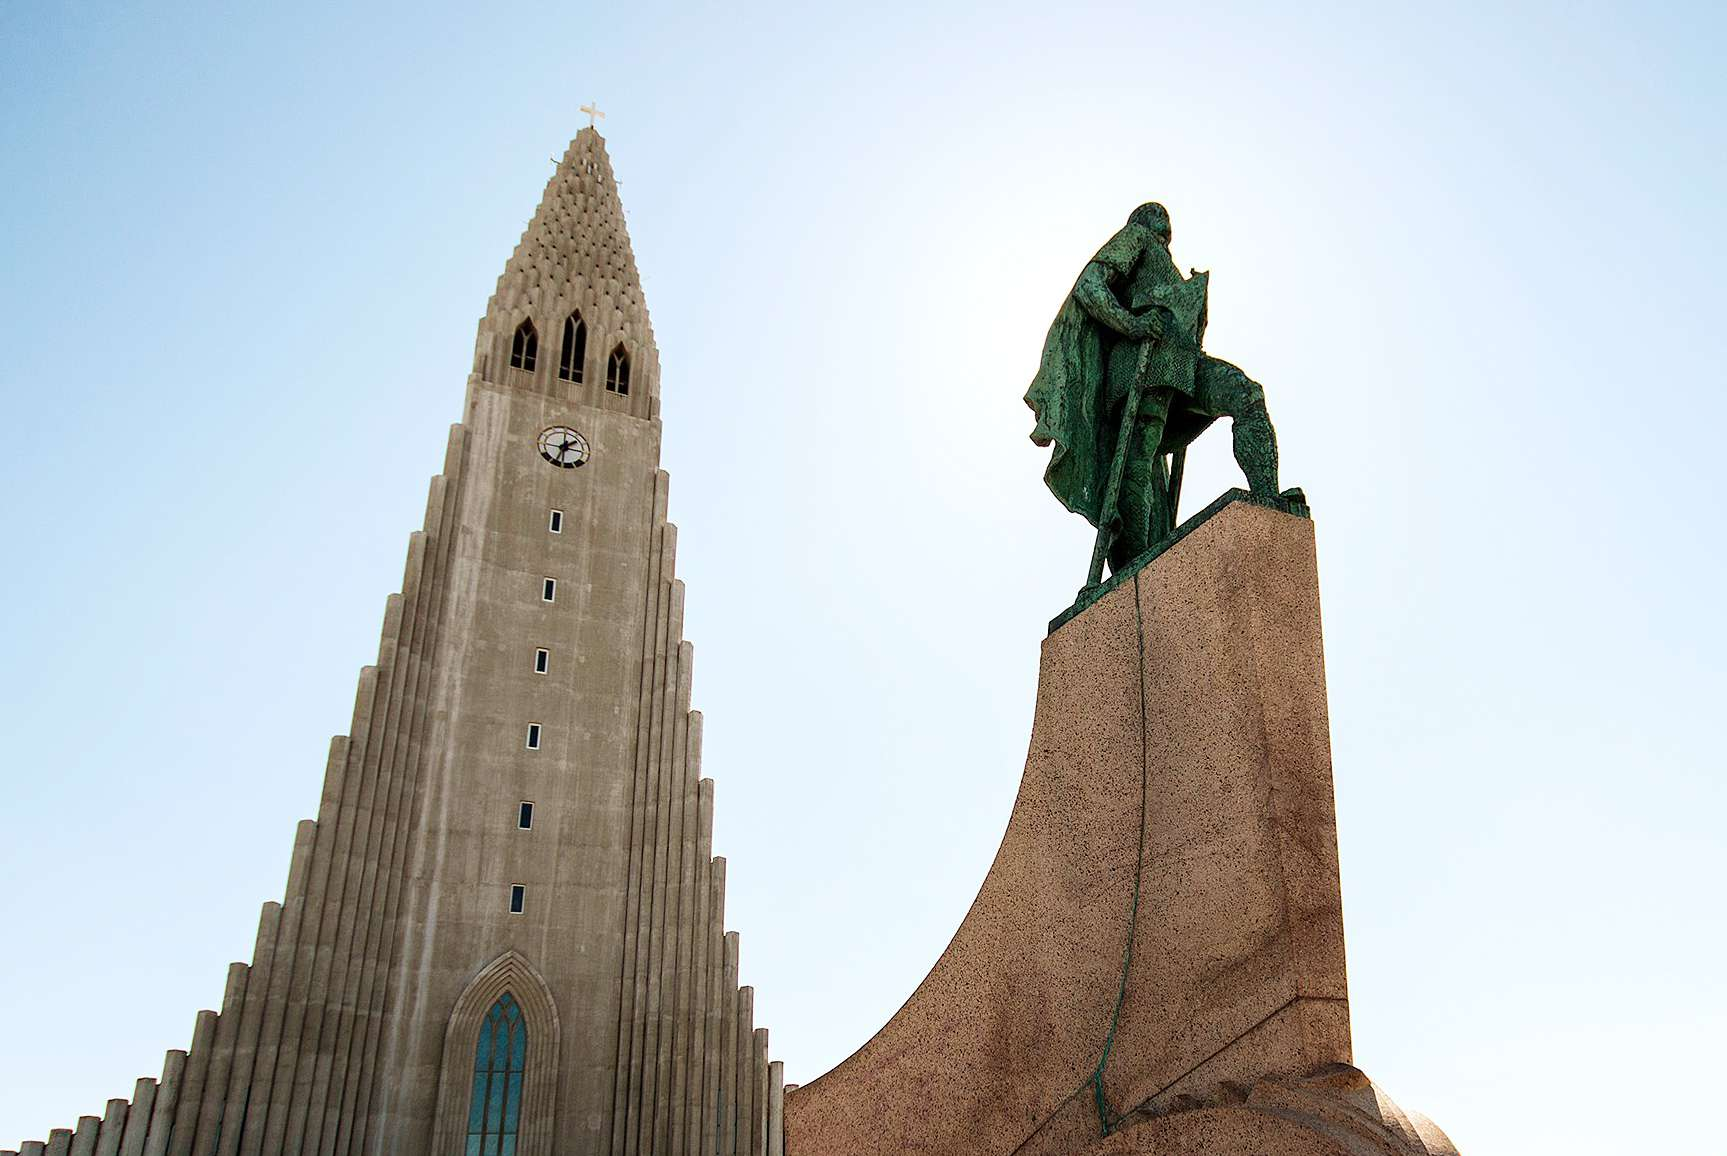 View of Hallgrimskirkja and the statue out front